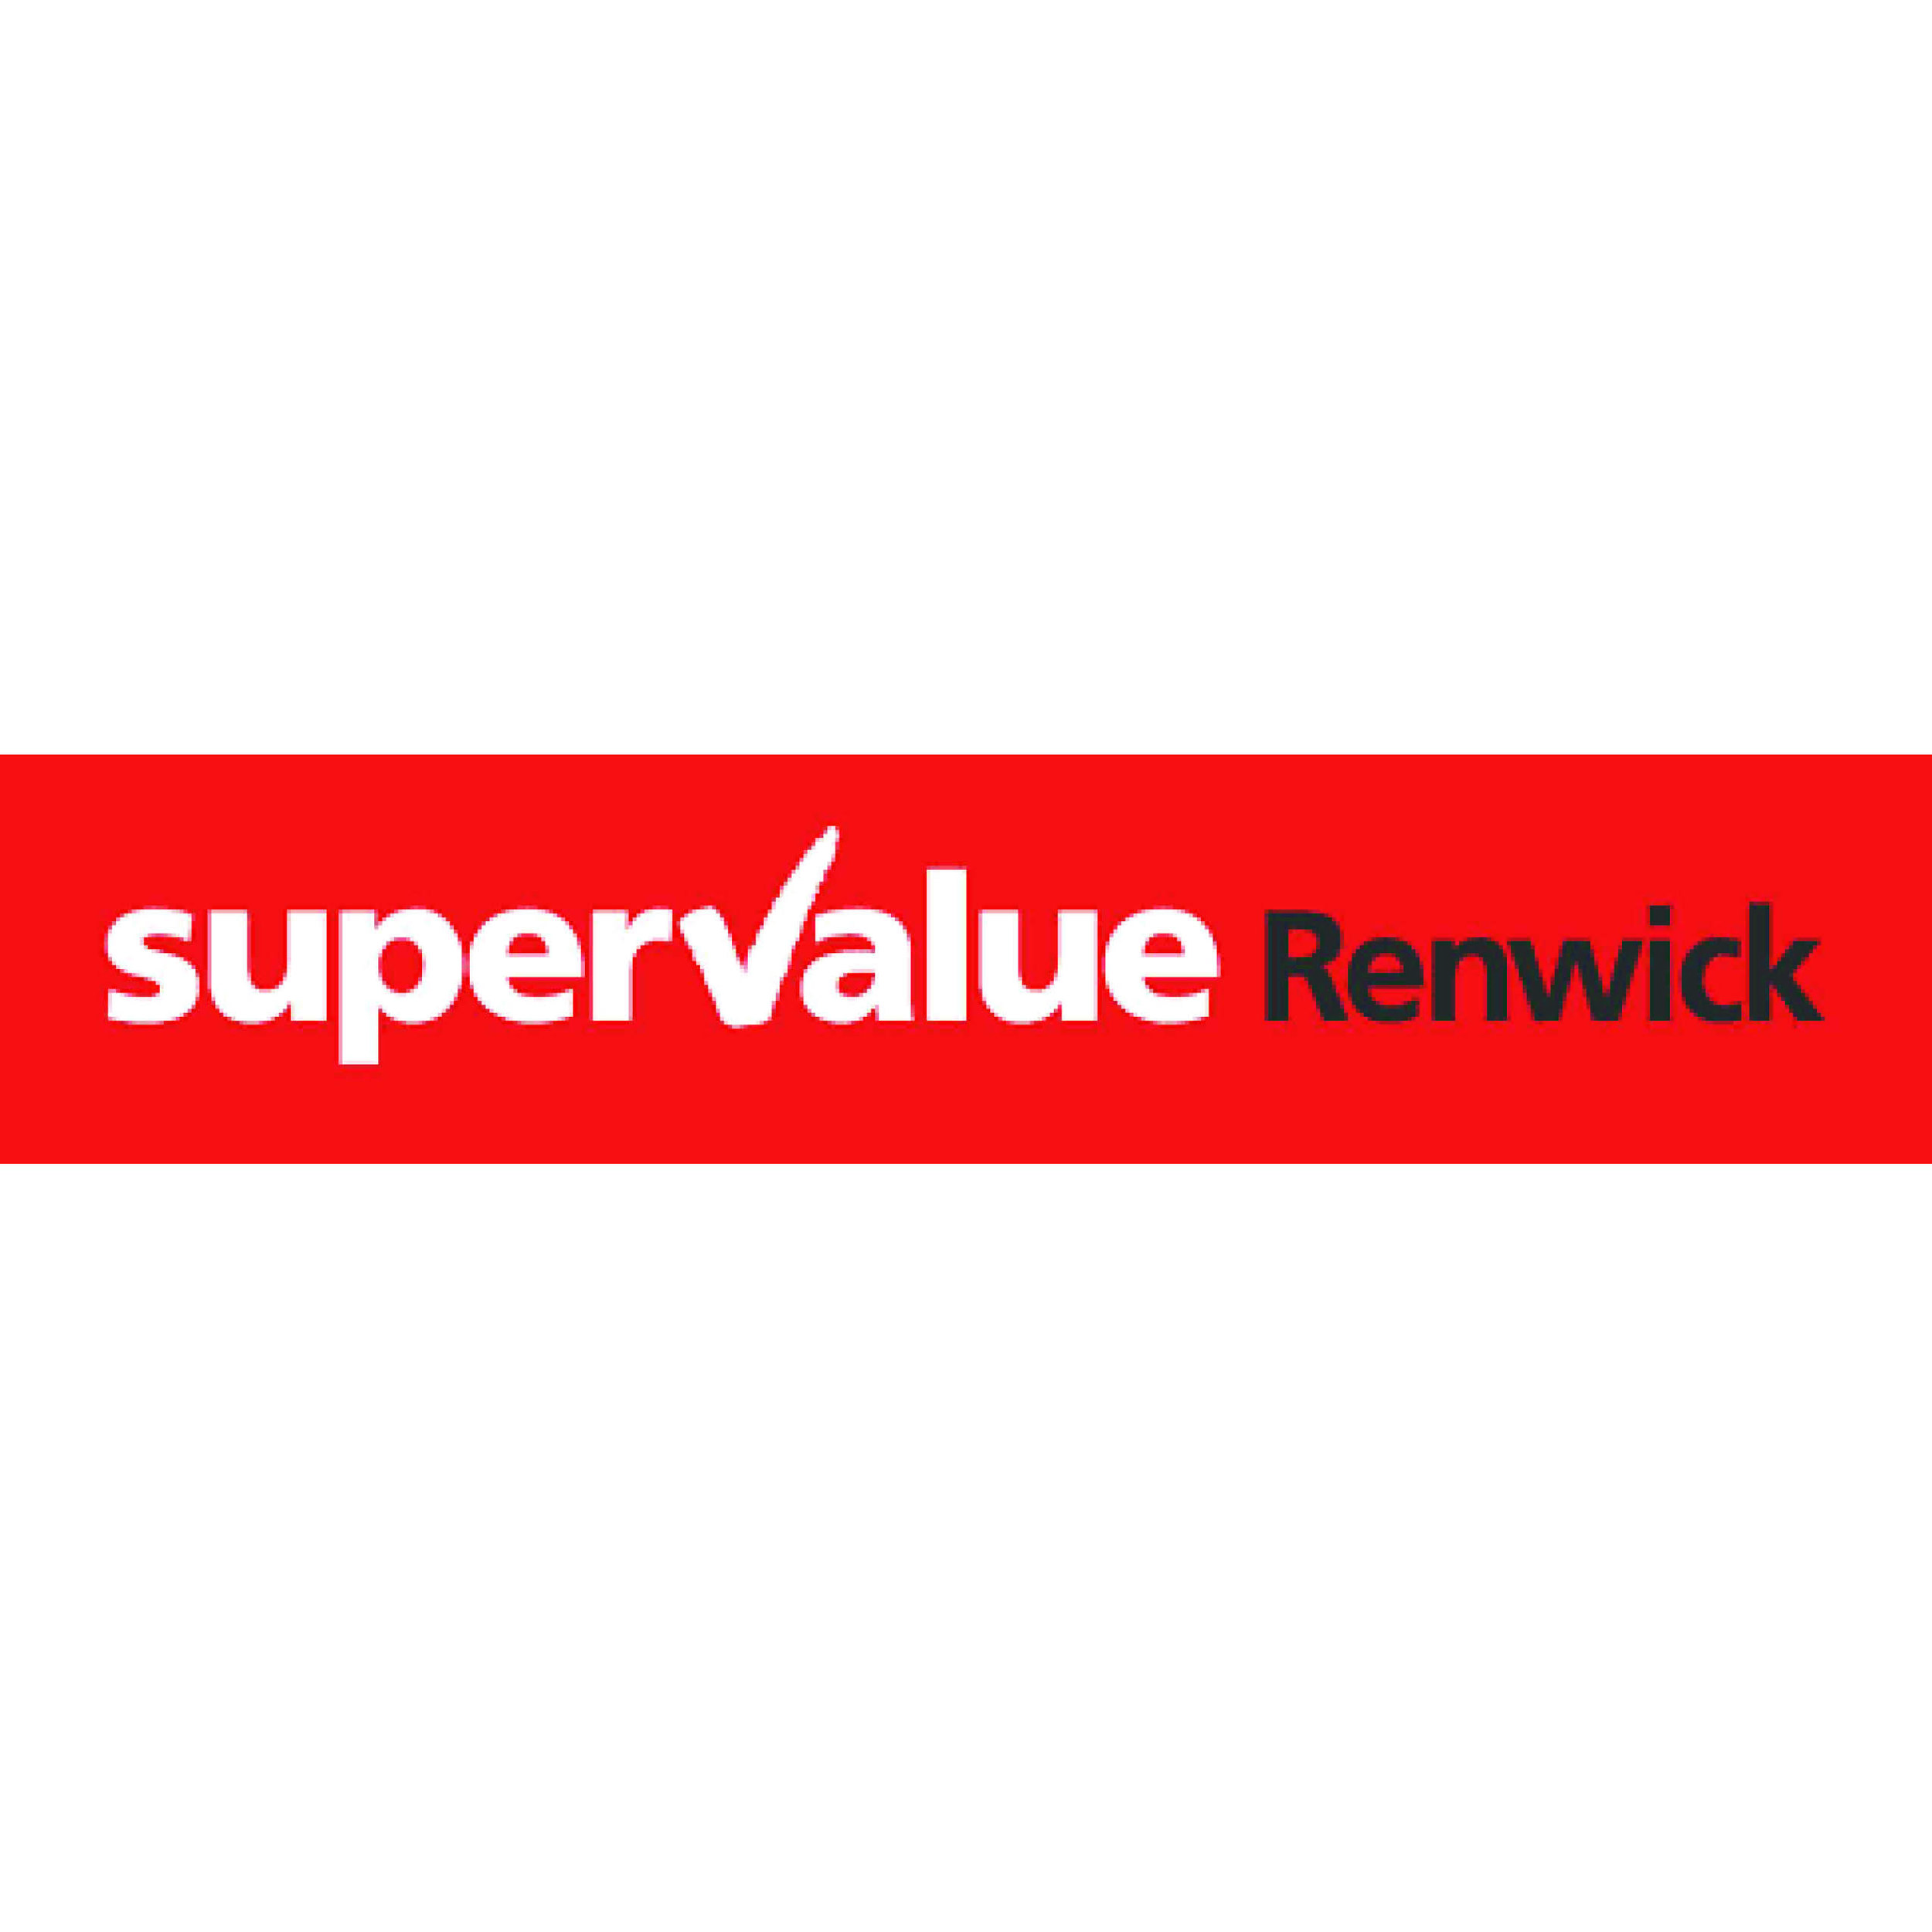 Renwick Supervalue